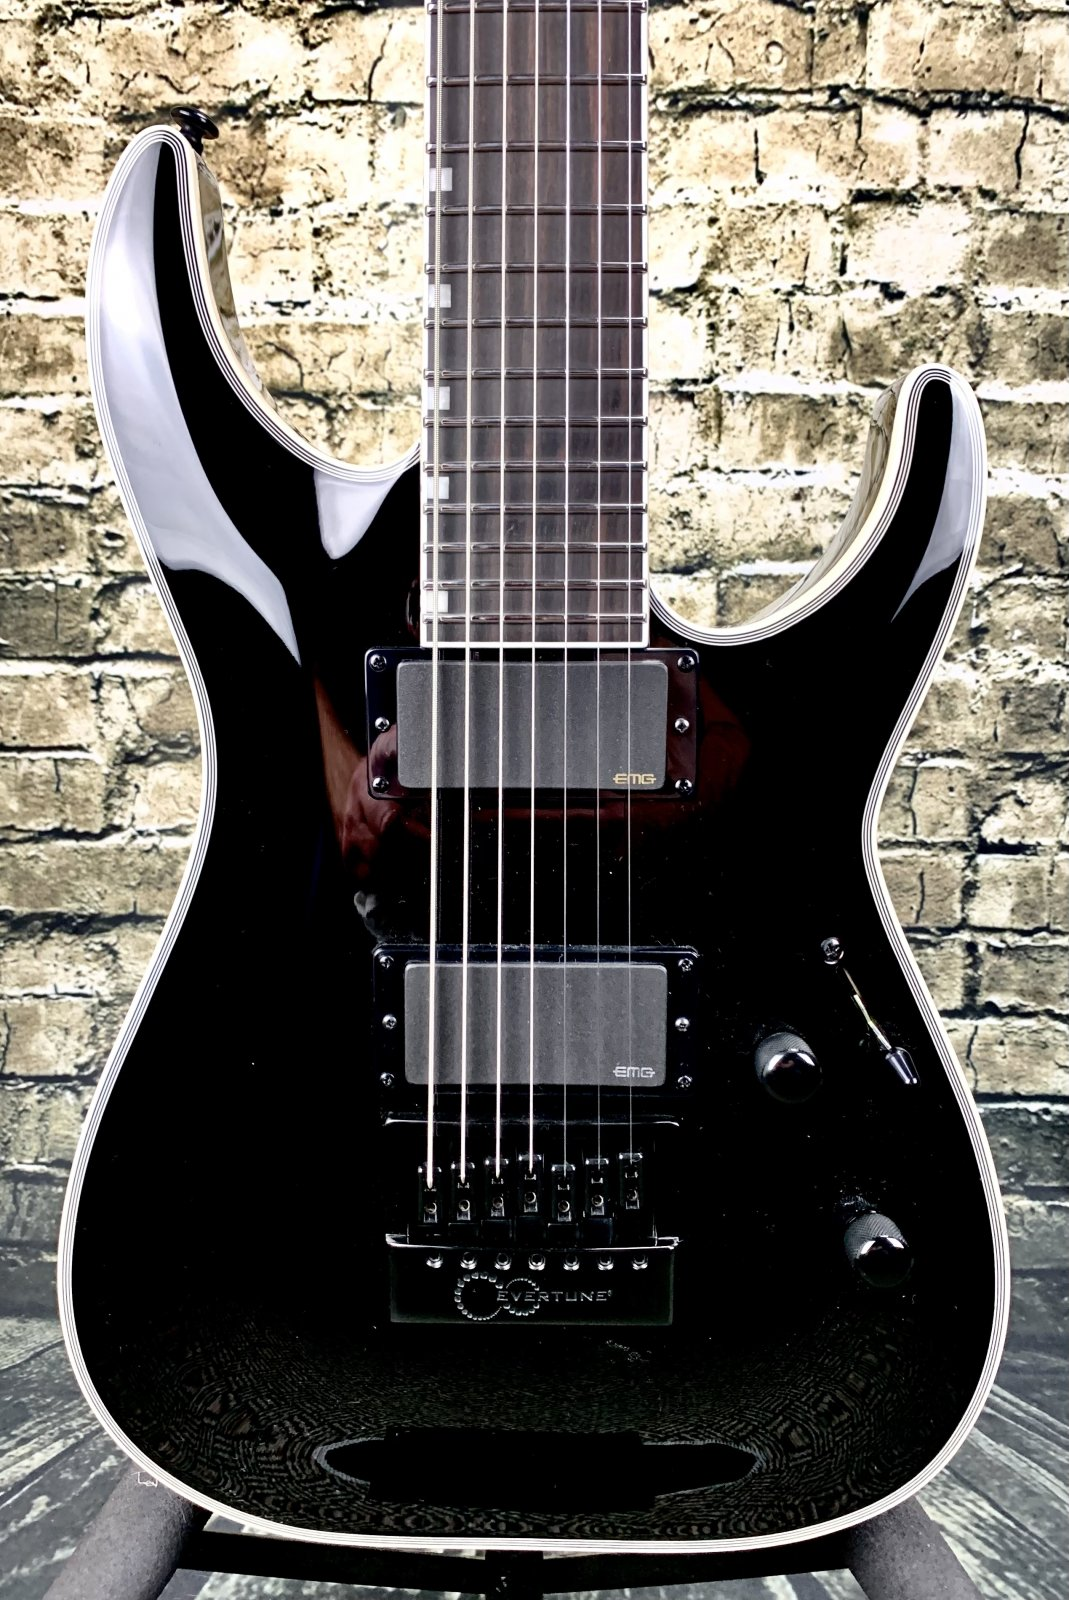 LTD MH-1007ET MH Series Evertune 7 String Electric Guitar - Black